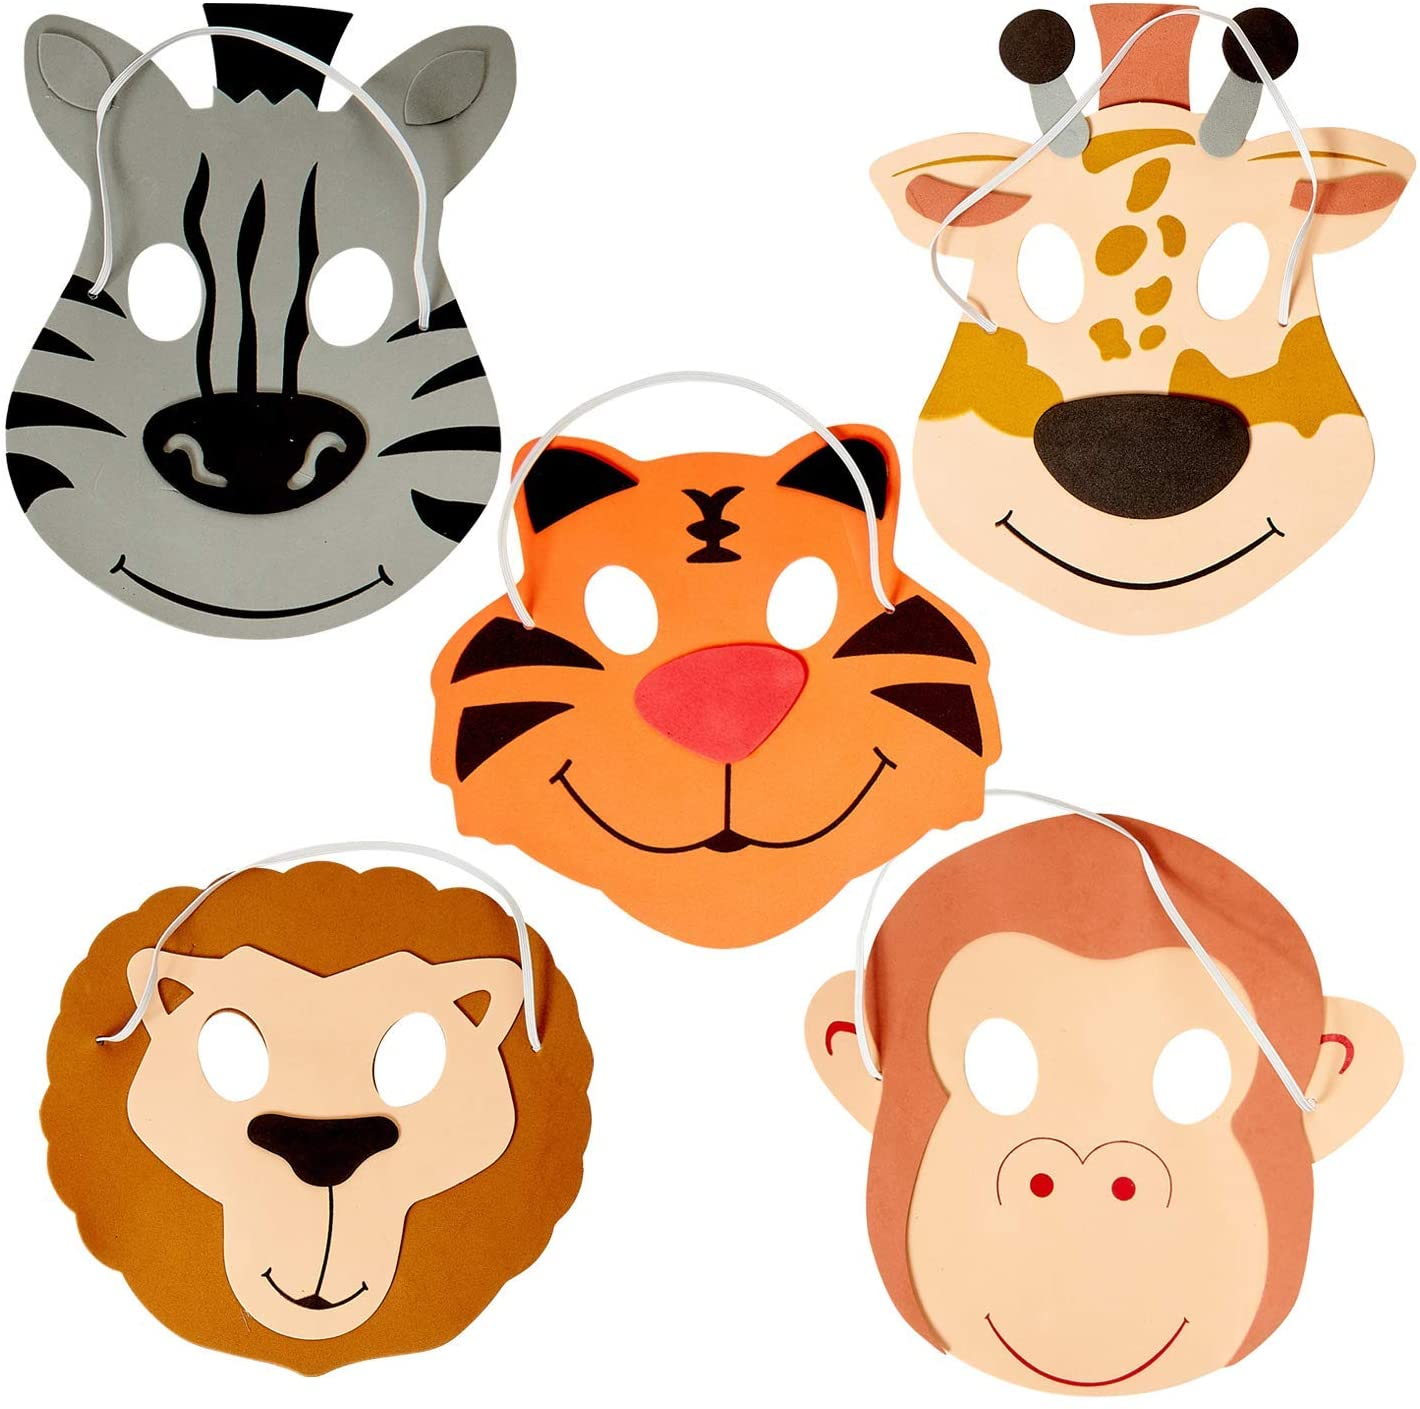 Kicko 12 Foam Animal Masks 7.5 Inch 4 Different Sorts of Animals - Good for Kids Costume Parties